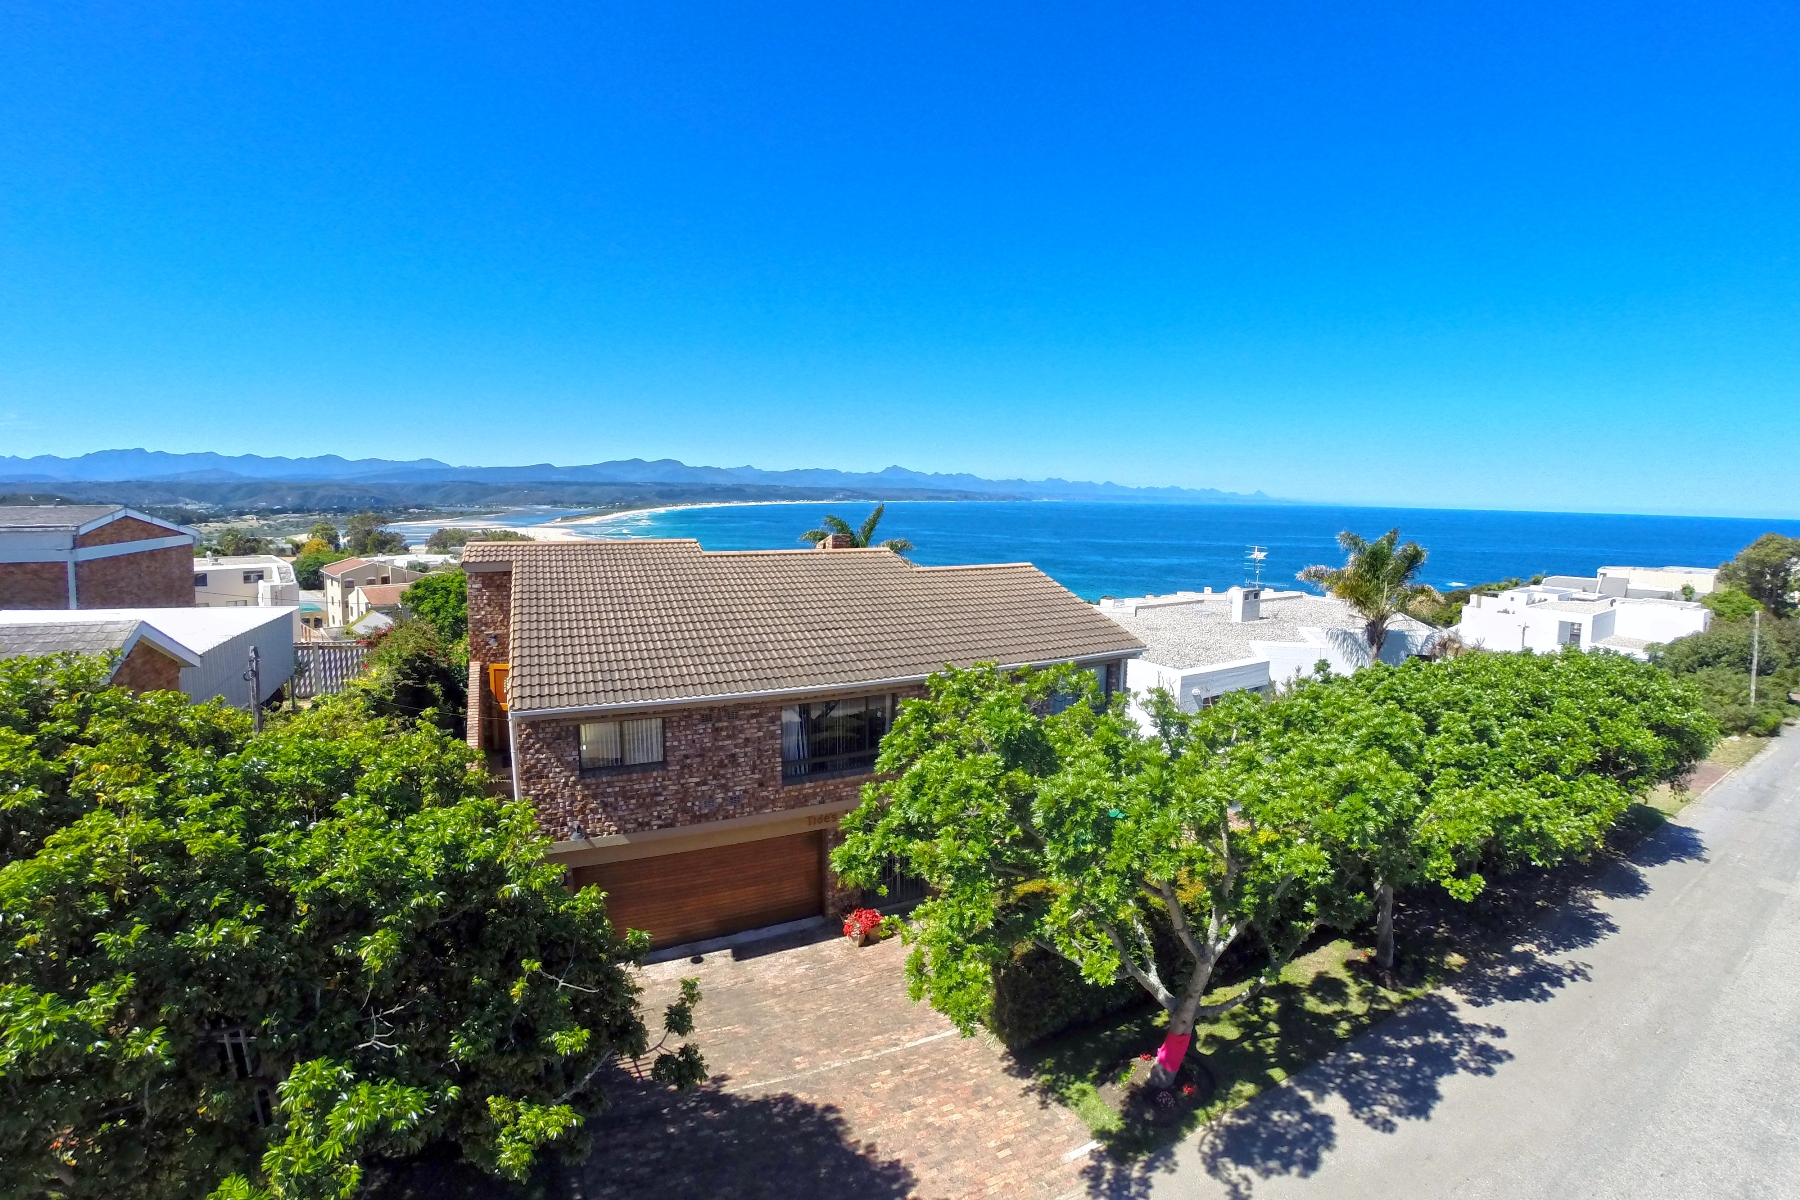 Single Family Home for Sale at North Facing Home With Views Plettenberg Bay, Western Cape, 6600 South Africa